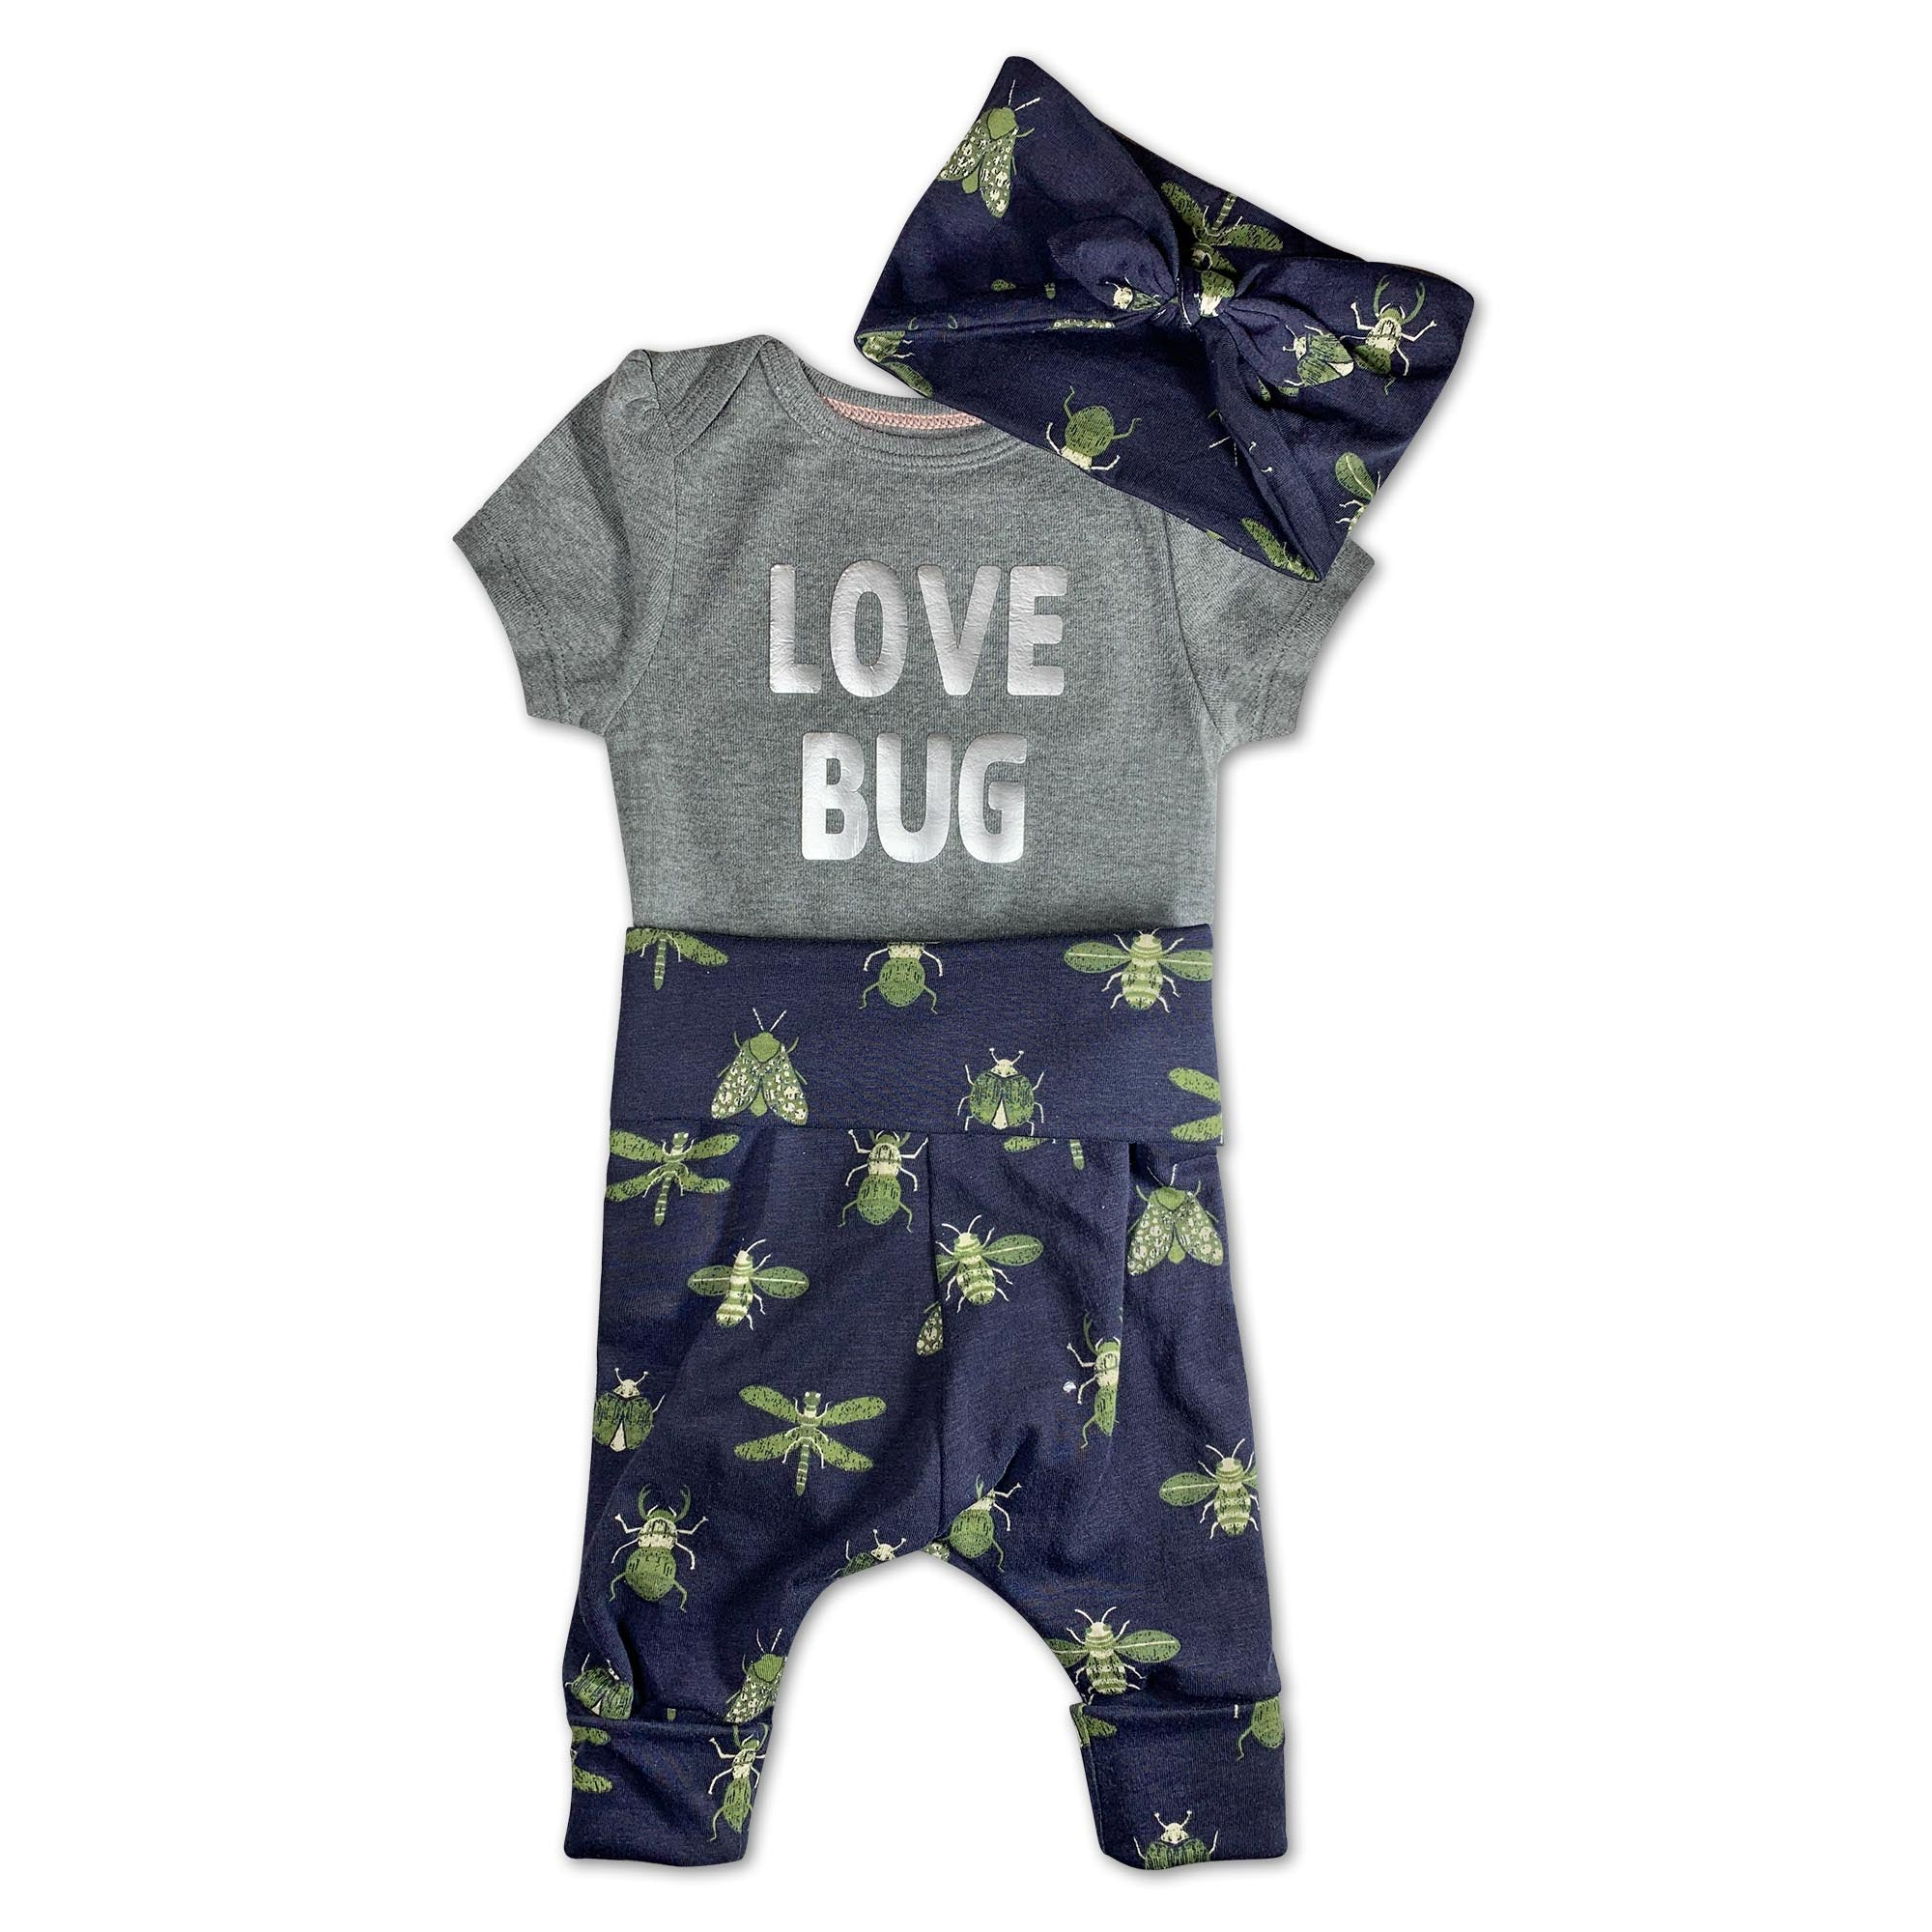 """Love Bug"" Shirt"